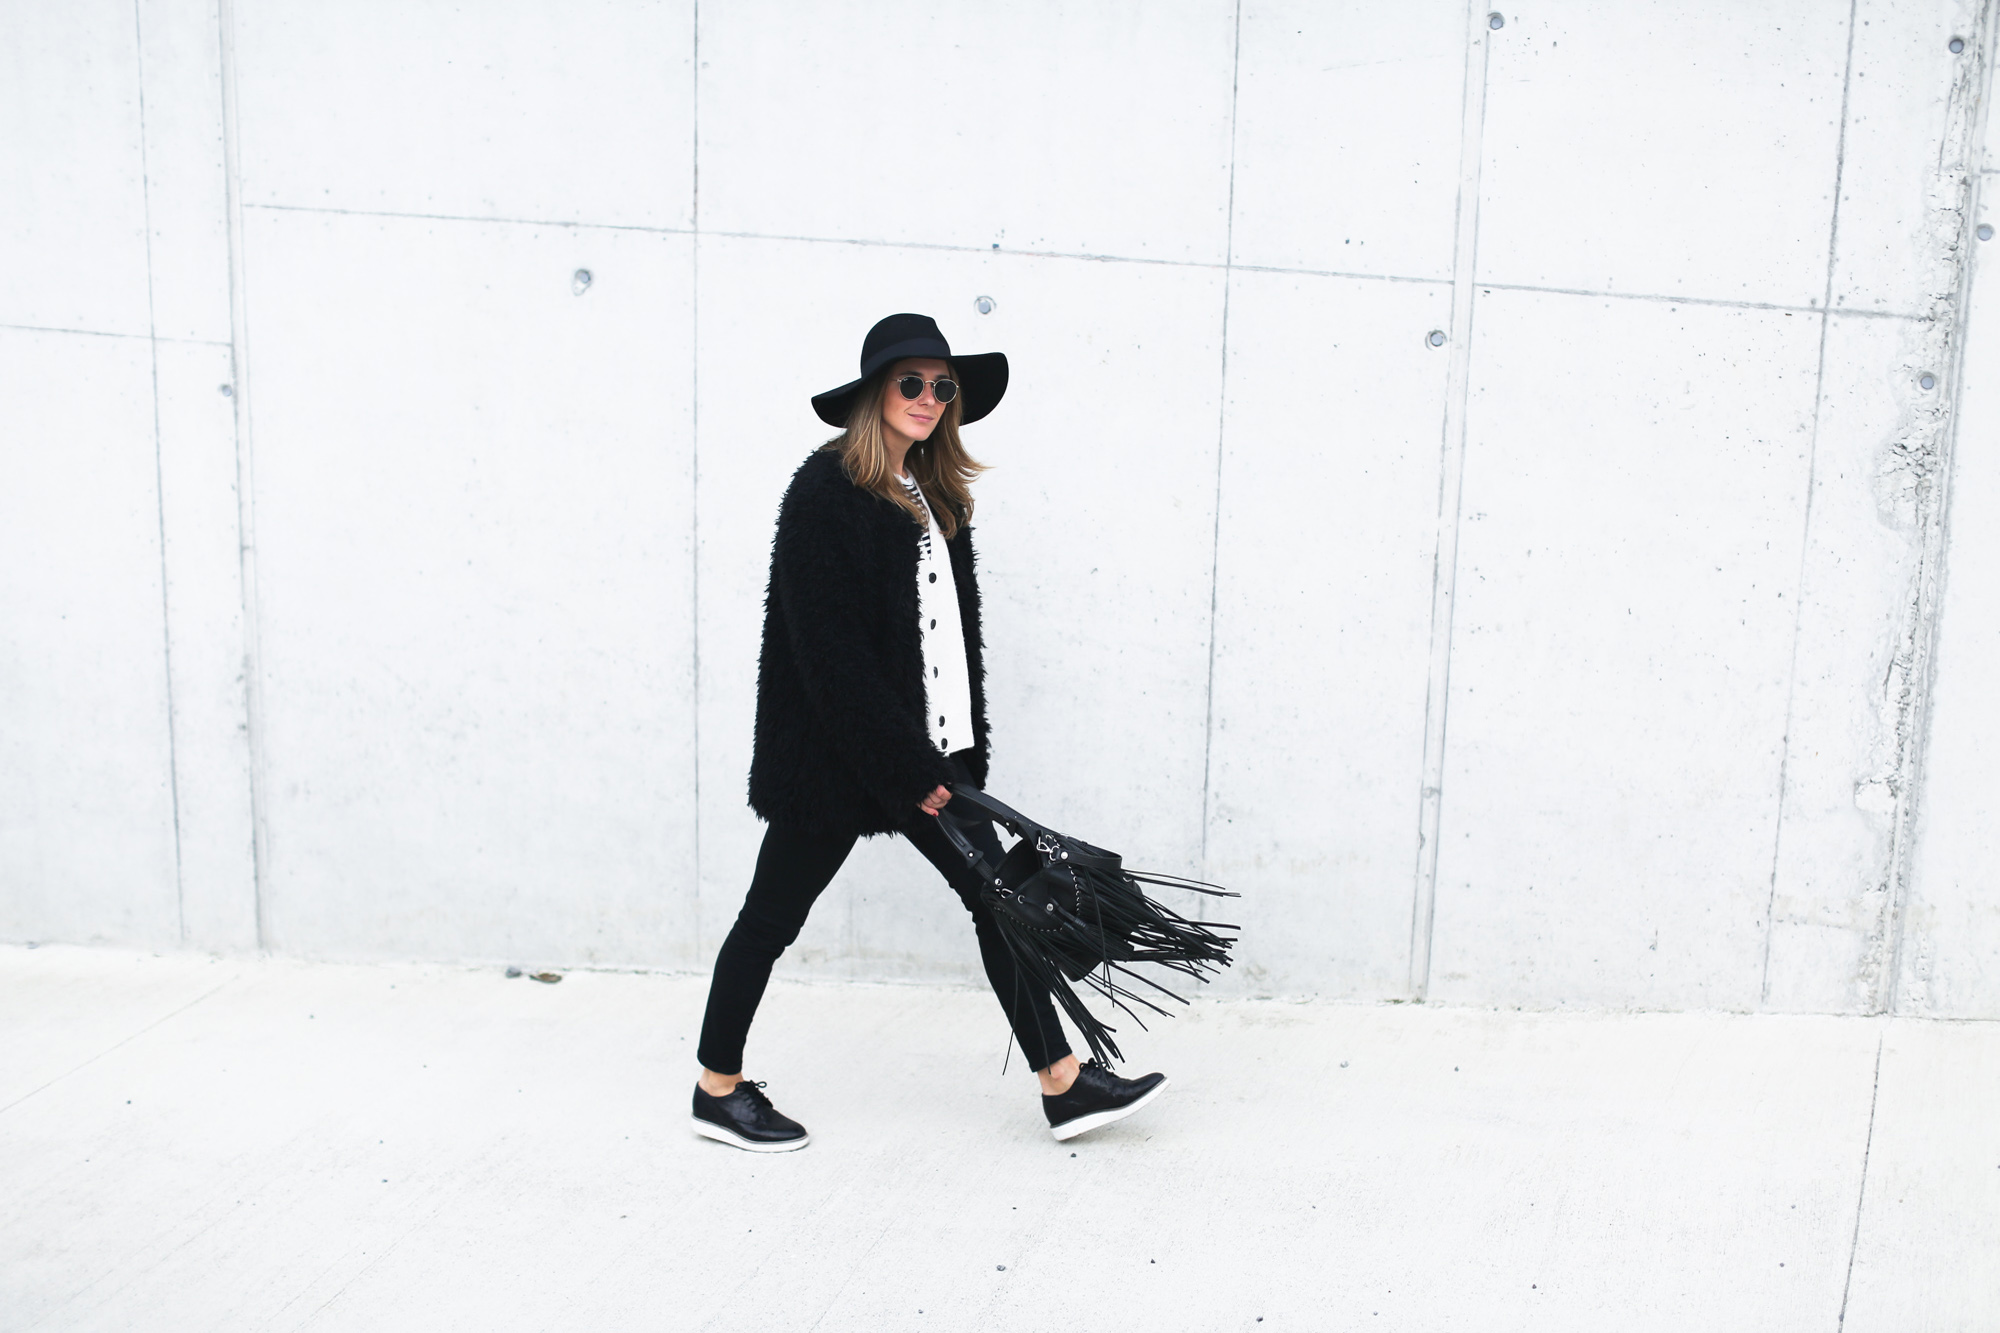 clochet_streetstyle_Billabong_Christmas_collection_furry_coat-4